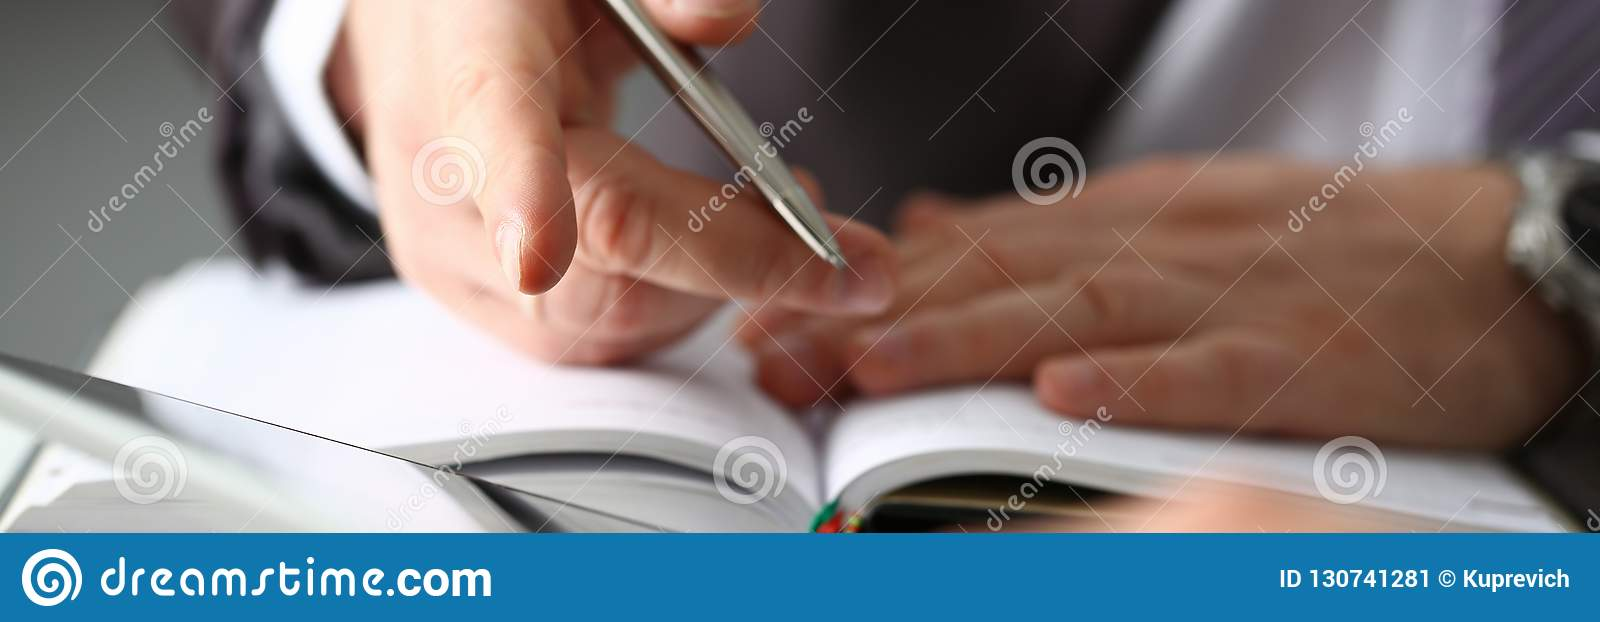 92867c38cd99 Hand of businessman in suit filling and signing with silver pen partnership  agreement form clipped to pad closeup. Management training course some  important ...